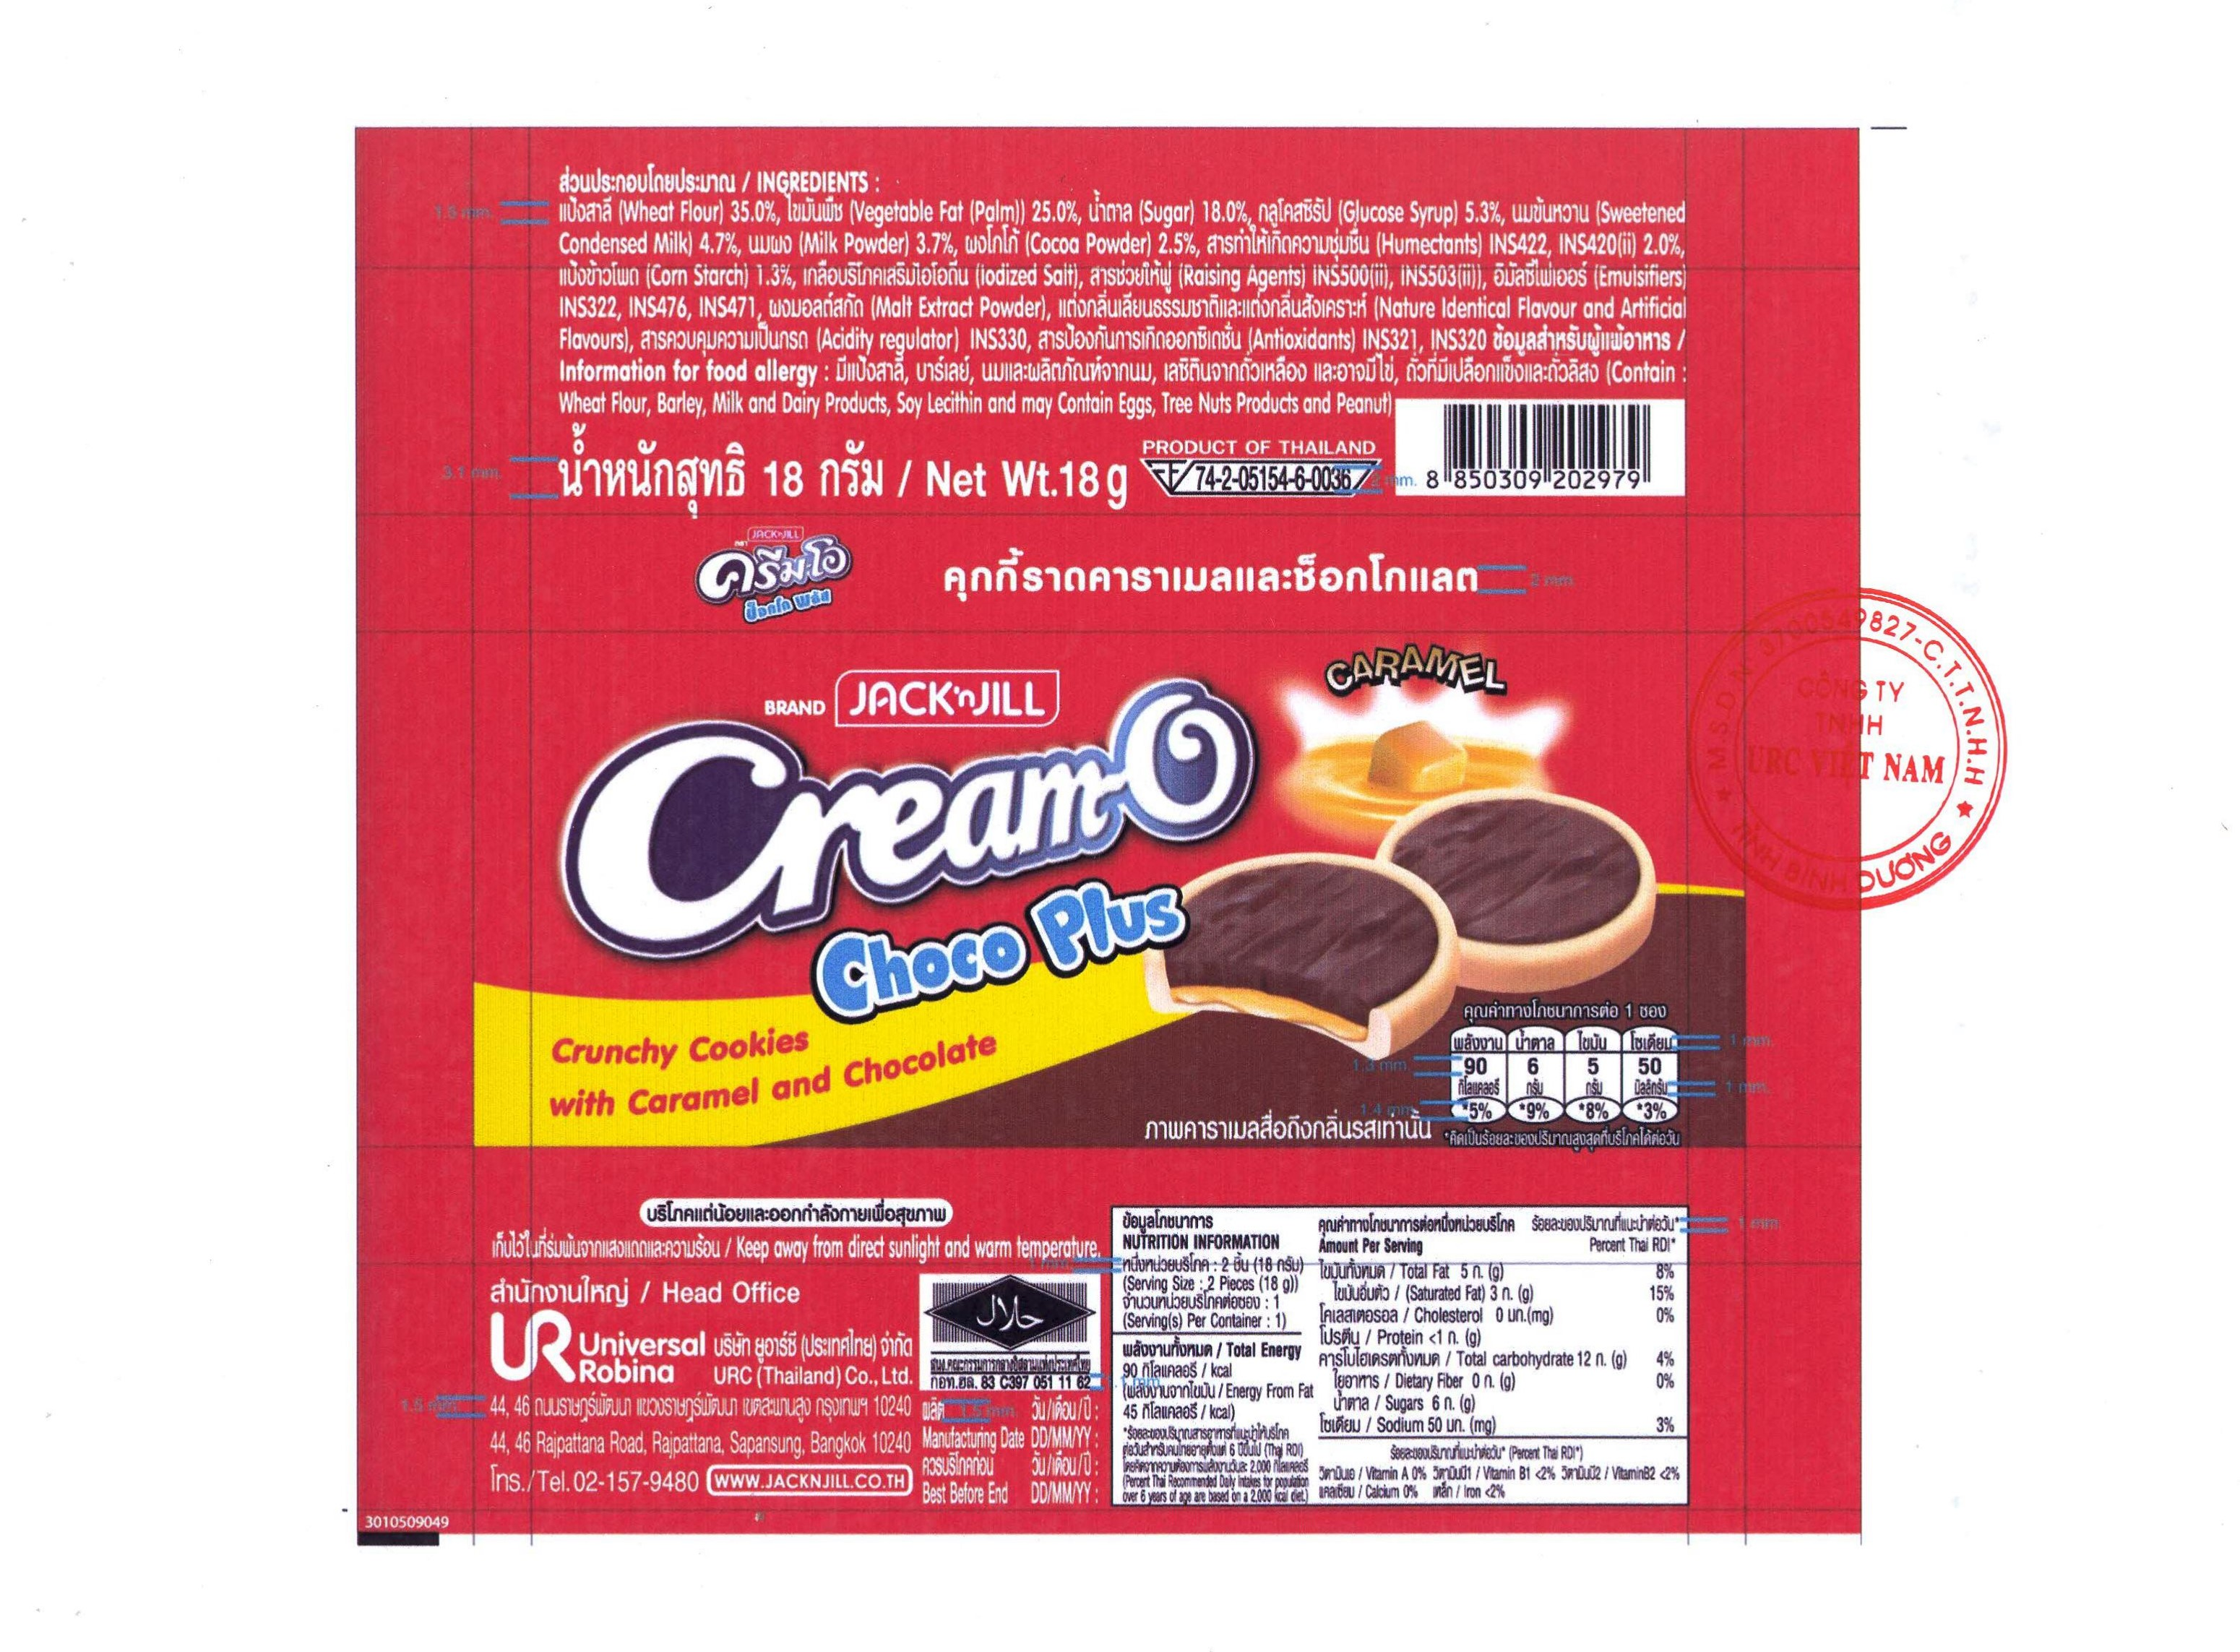 PRODUCT ANNOUNCEMENT CRUNCHY COOKIES WITH CARAMEL AND CHOCOLATE BRAND CREAM-O CHOCO PLUS